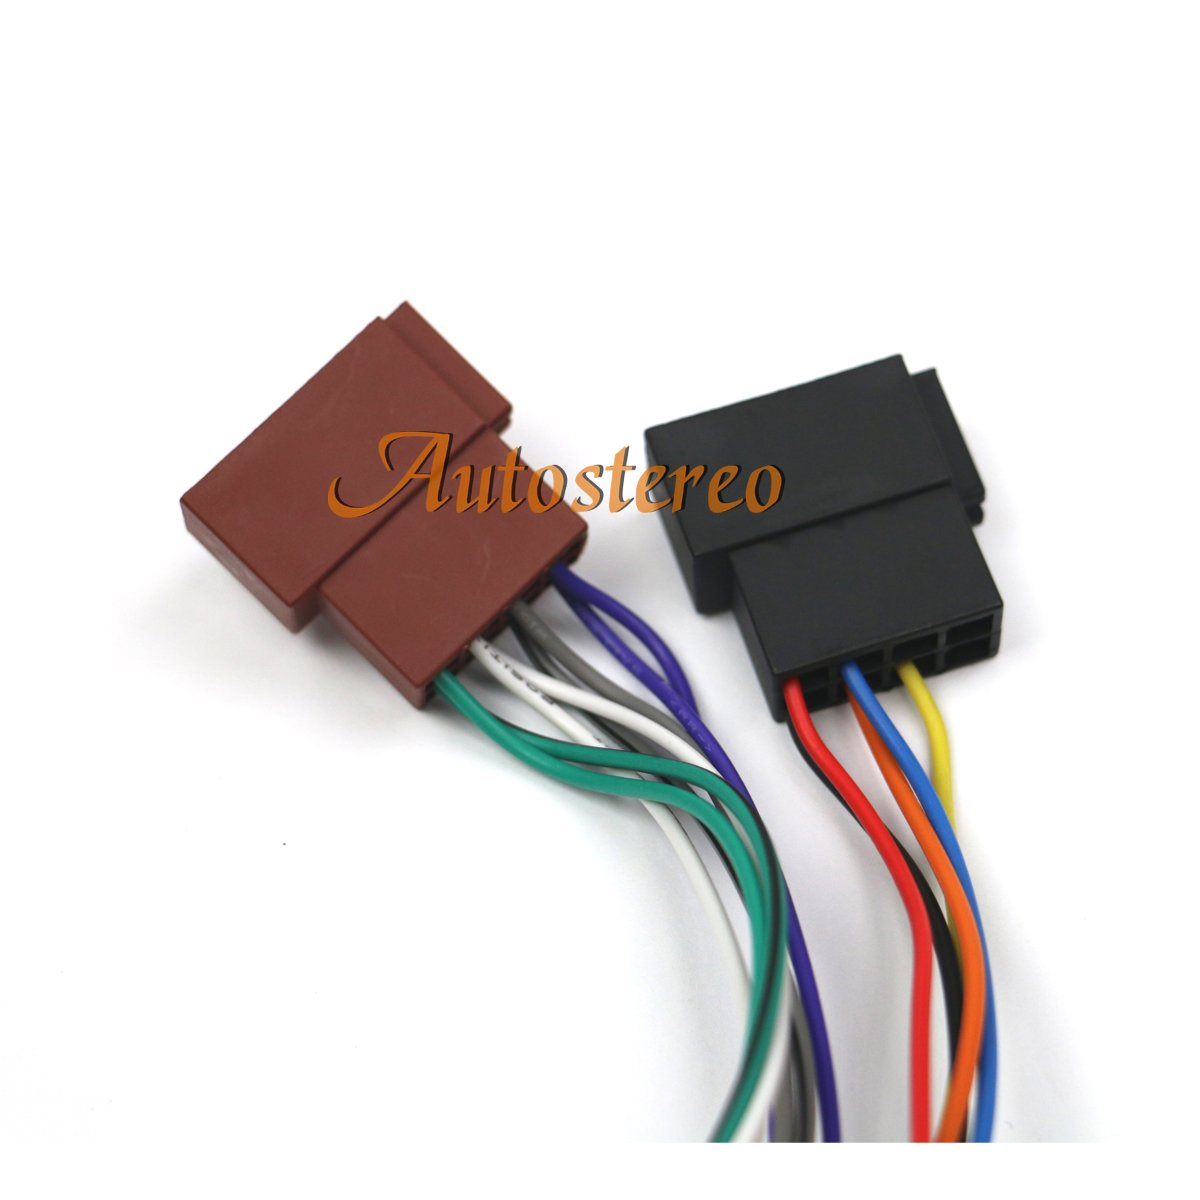 Amazon.com: Autostereo Car Radio Stereo Cable Wire Harness ... on pioneer deh p6600 wiring, pioneer deh 225 wiring, pioneer super tuner iii d wiring,